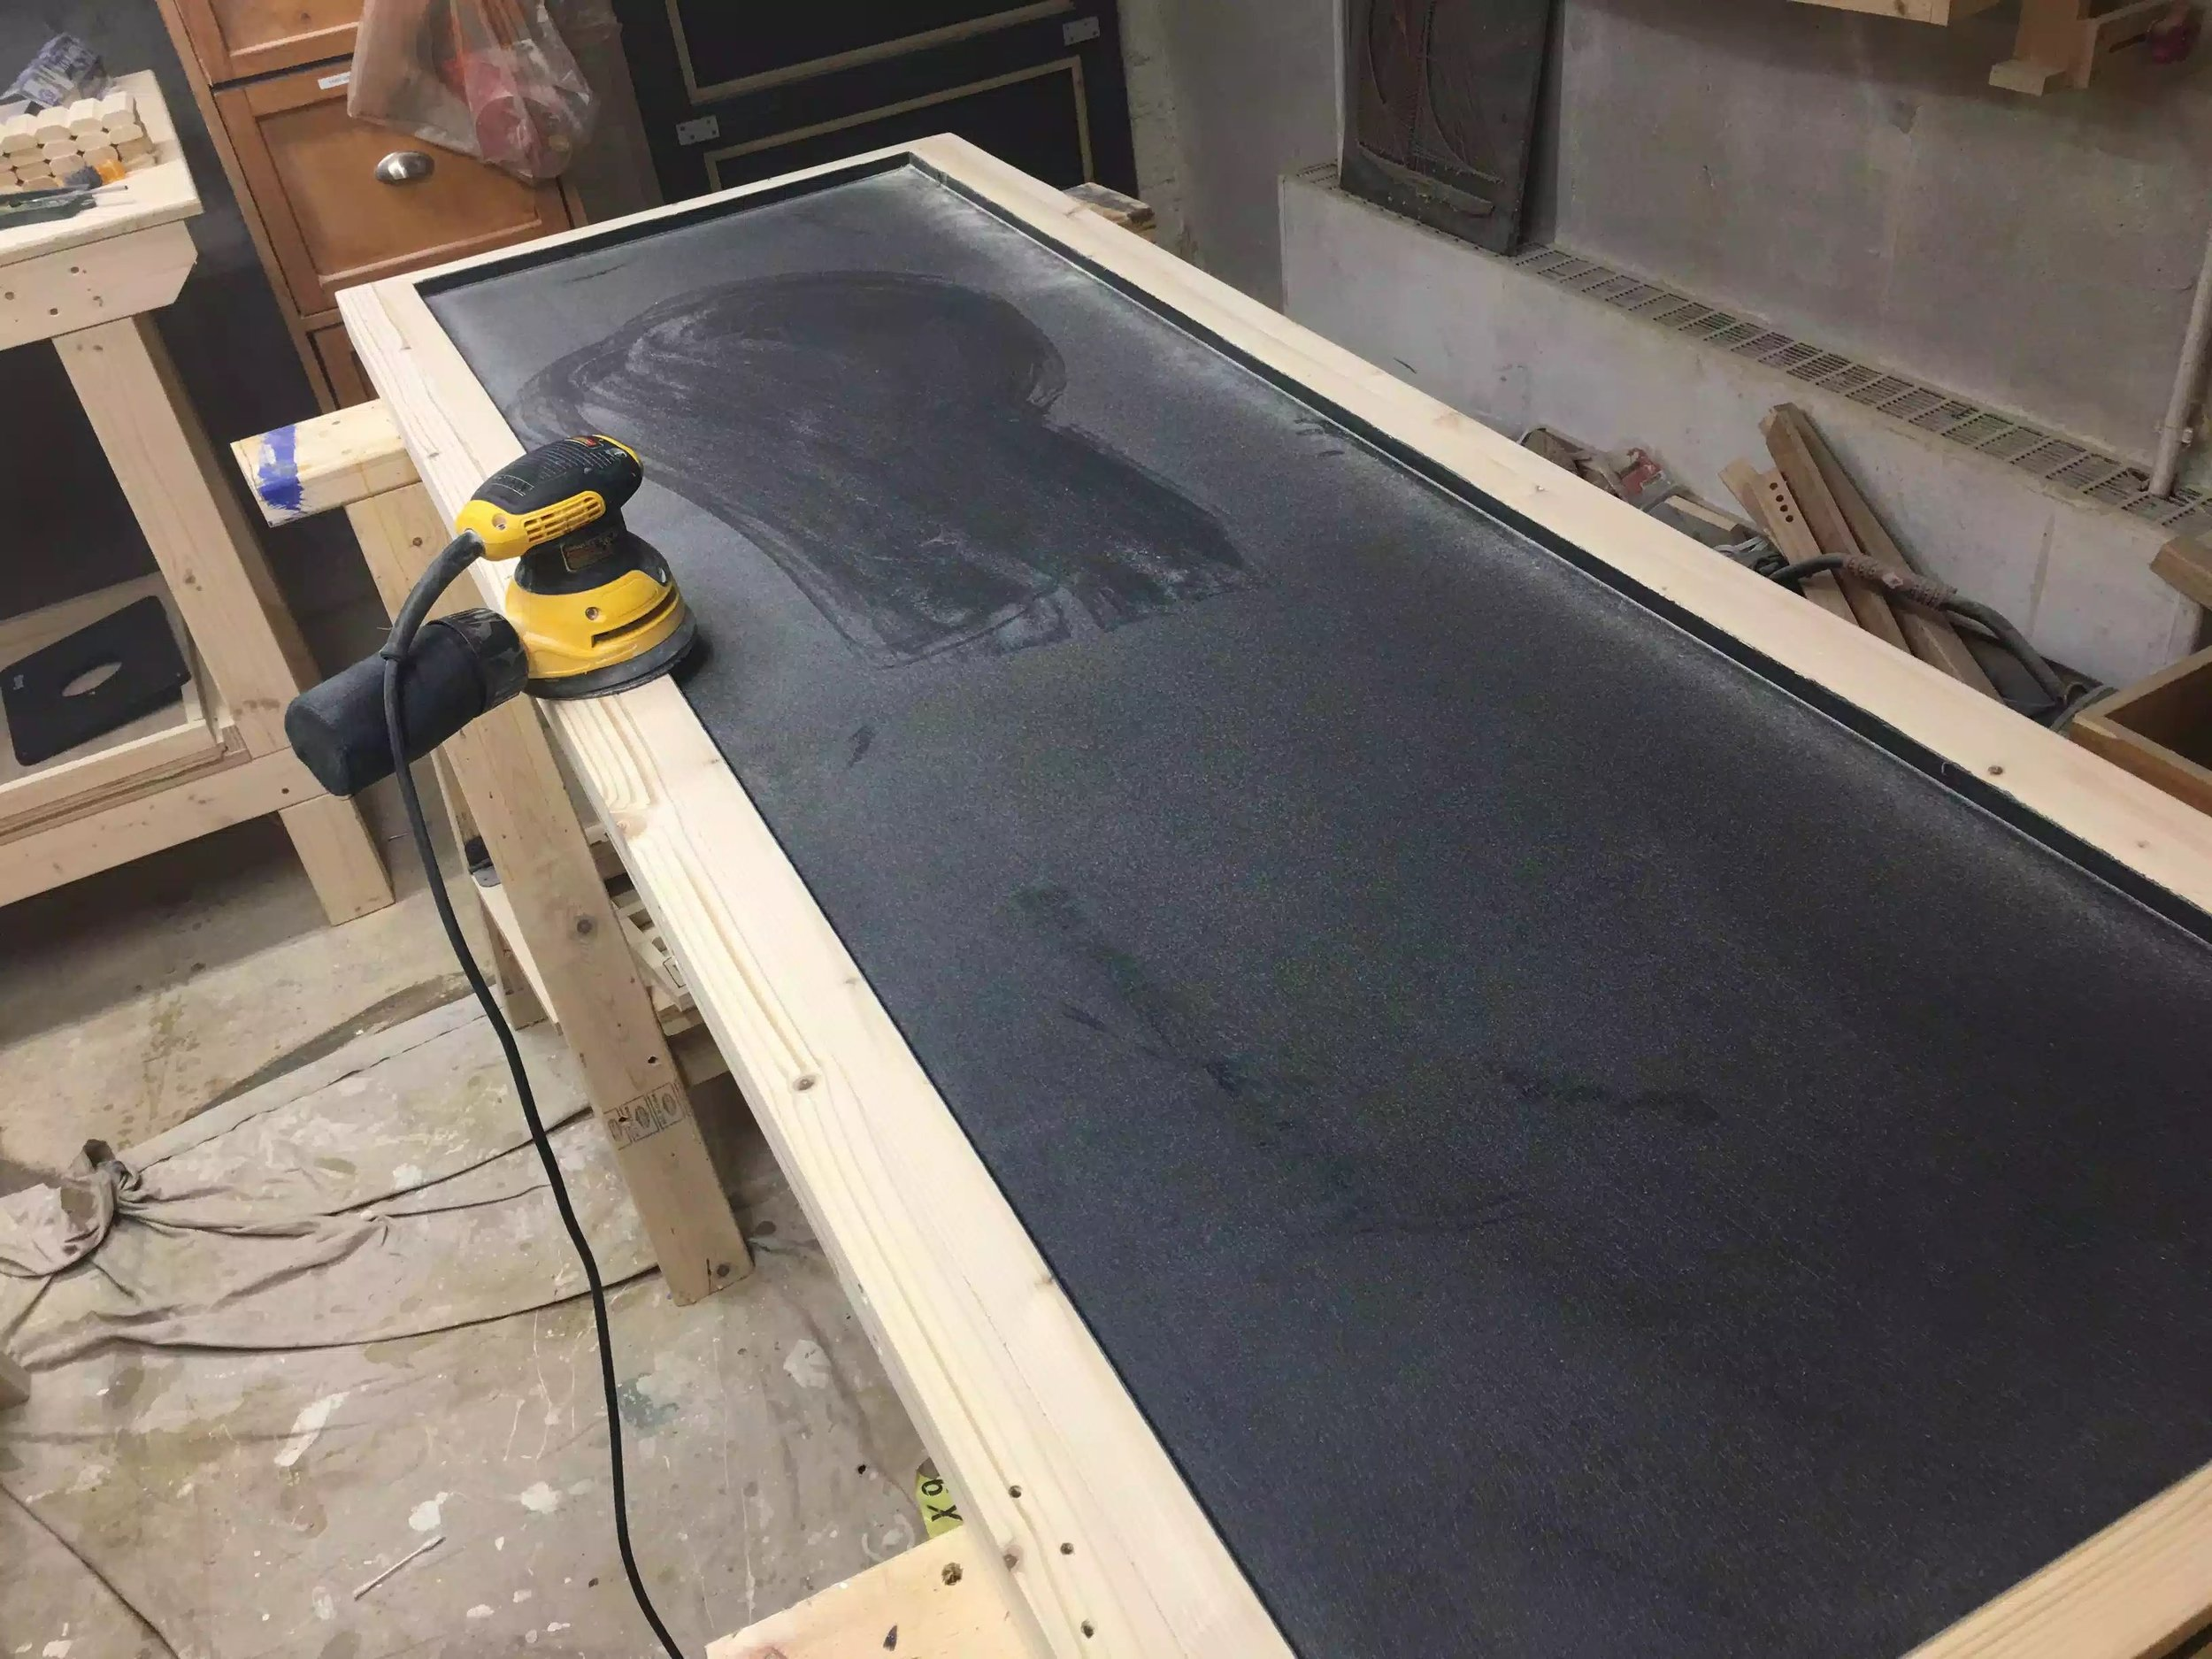 Here I am using my orbital sander after the paint had dried, as you can see it created a lot of dust build up on the panel, so I just vacummed that up and wiped it down with a damp rag. I sanded it as before from 80 grit - 220 grit